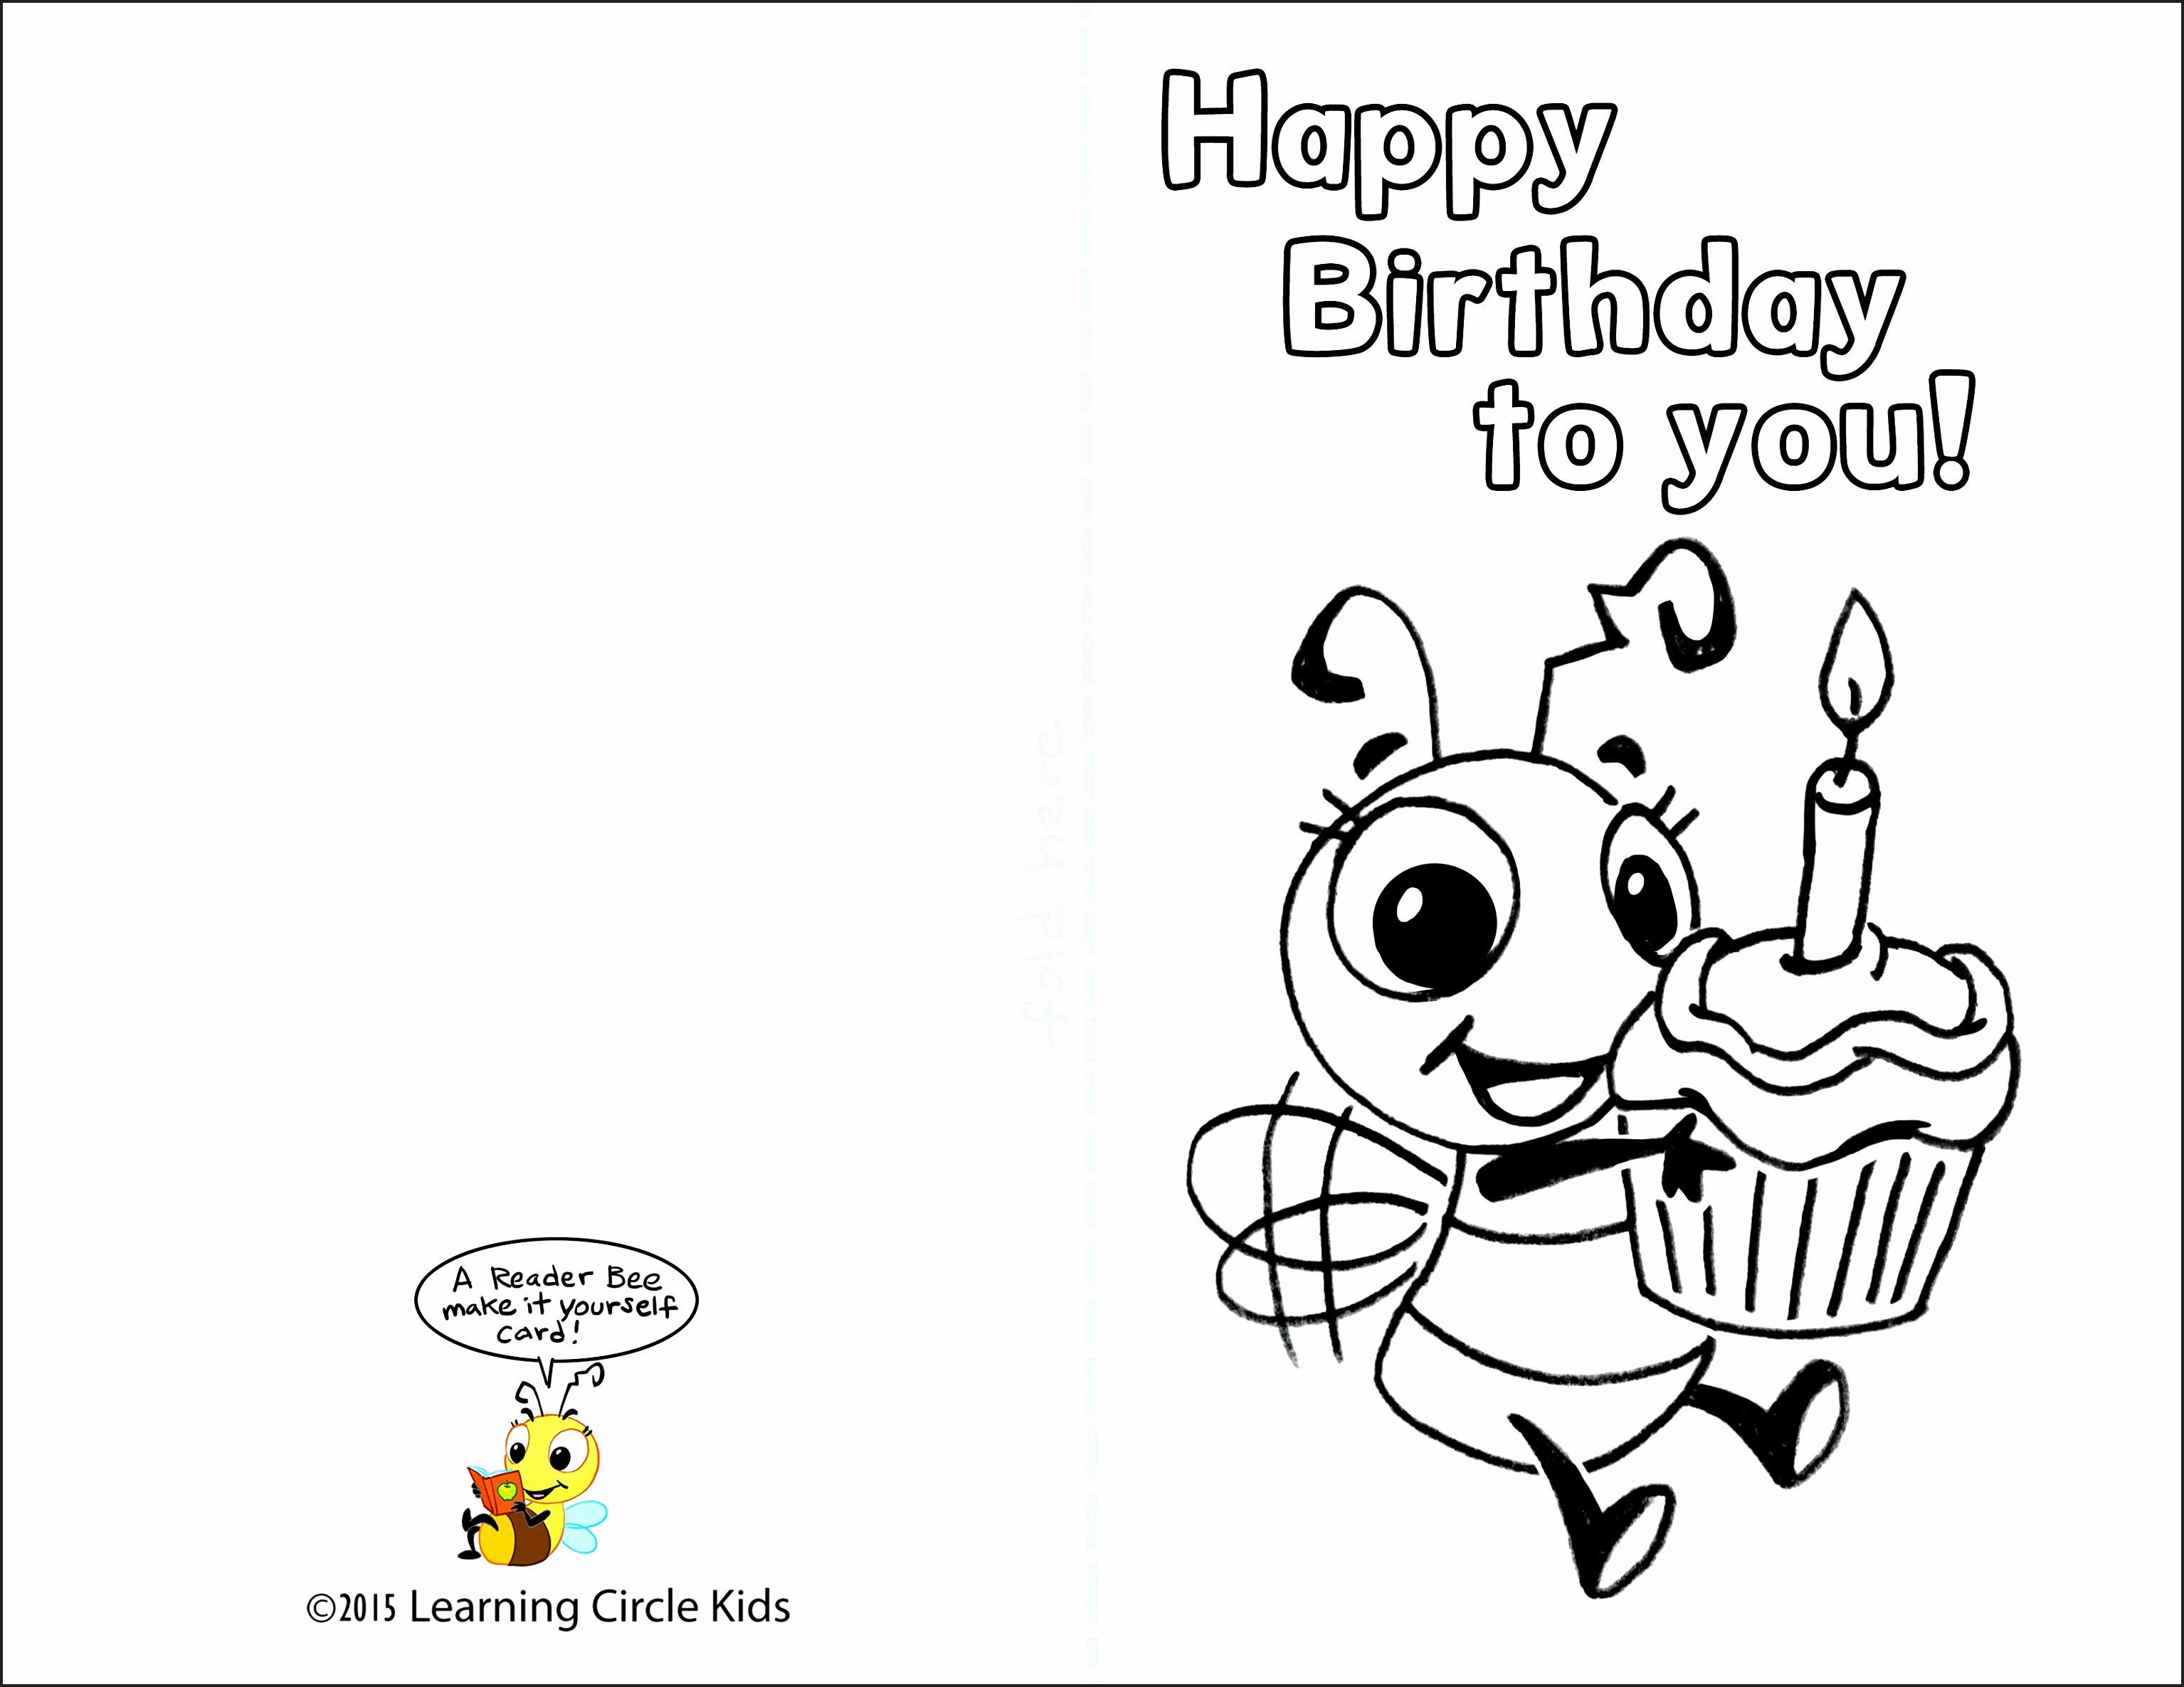 Free Printable Birthday Cards To Color - Printable Cards - Free Printable Greeting Cards